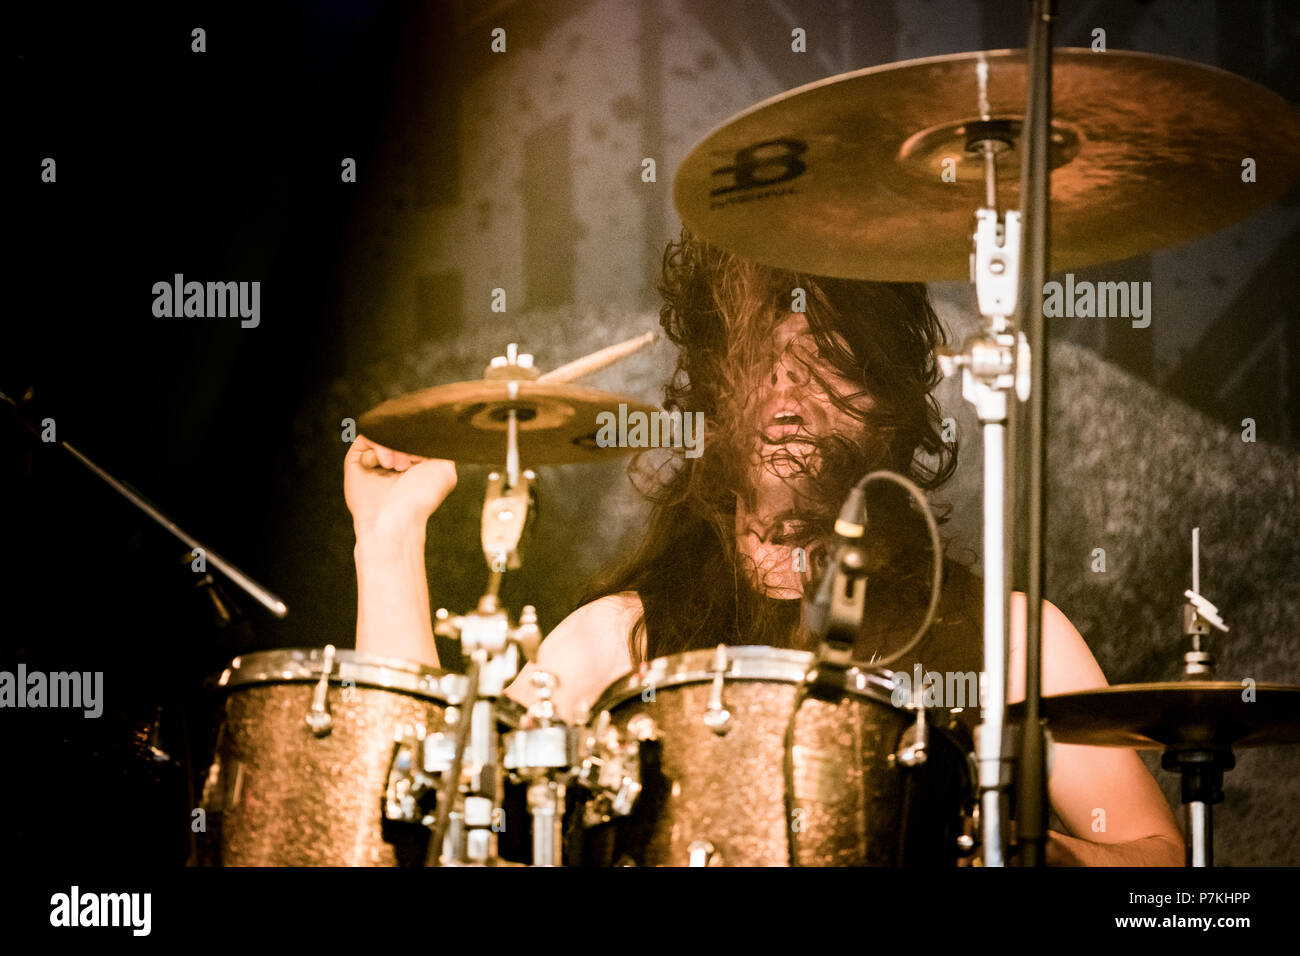 Roskilde, Denmark. 6th July 2018. The American extreme metal band Skeletonwitch performs a live concert at during the Danish music festival Roskilde Festival 2018. Here drummer Jon Rice is seen live on stage. (Photo credit: Gonzales Photo - Kim M. Leland). Credit: Gonzales Photo/Alamy Live News - Stock Image